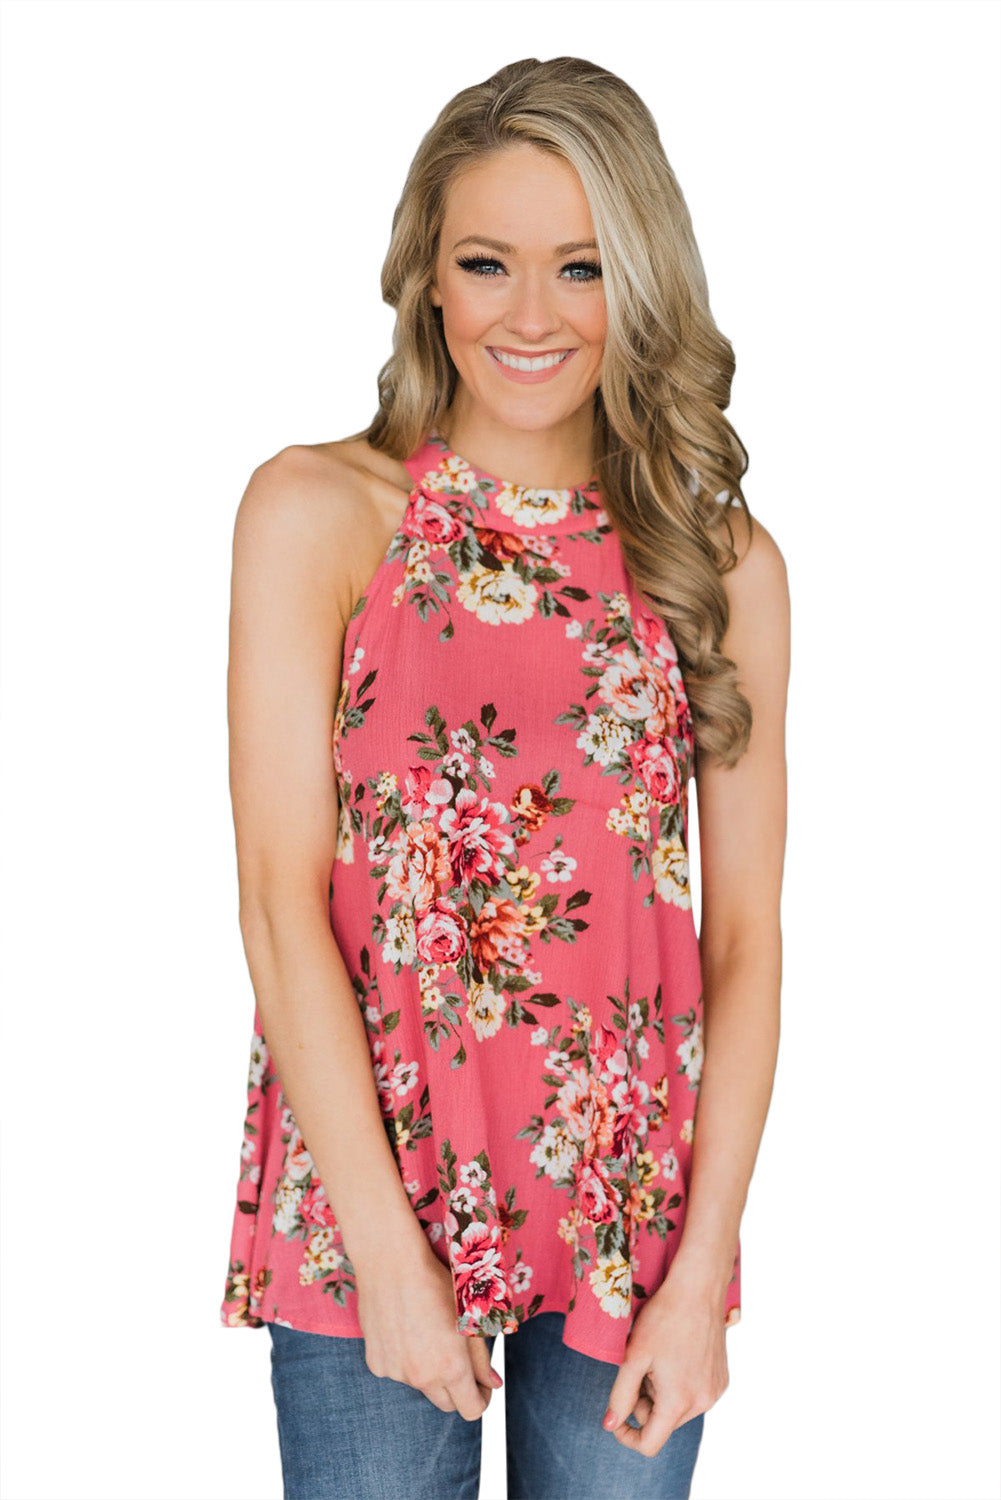 Coral Pink Floral Back Cutout Sleeveless Top